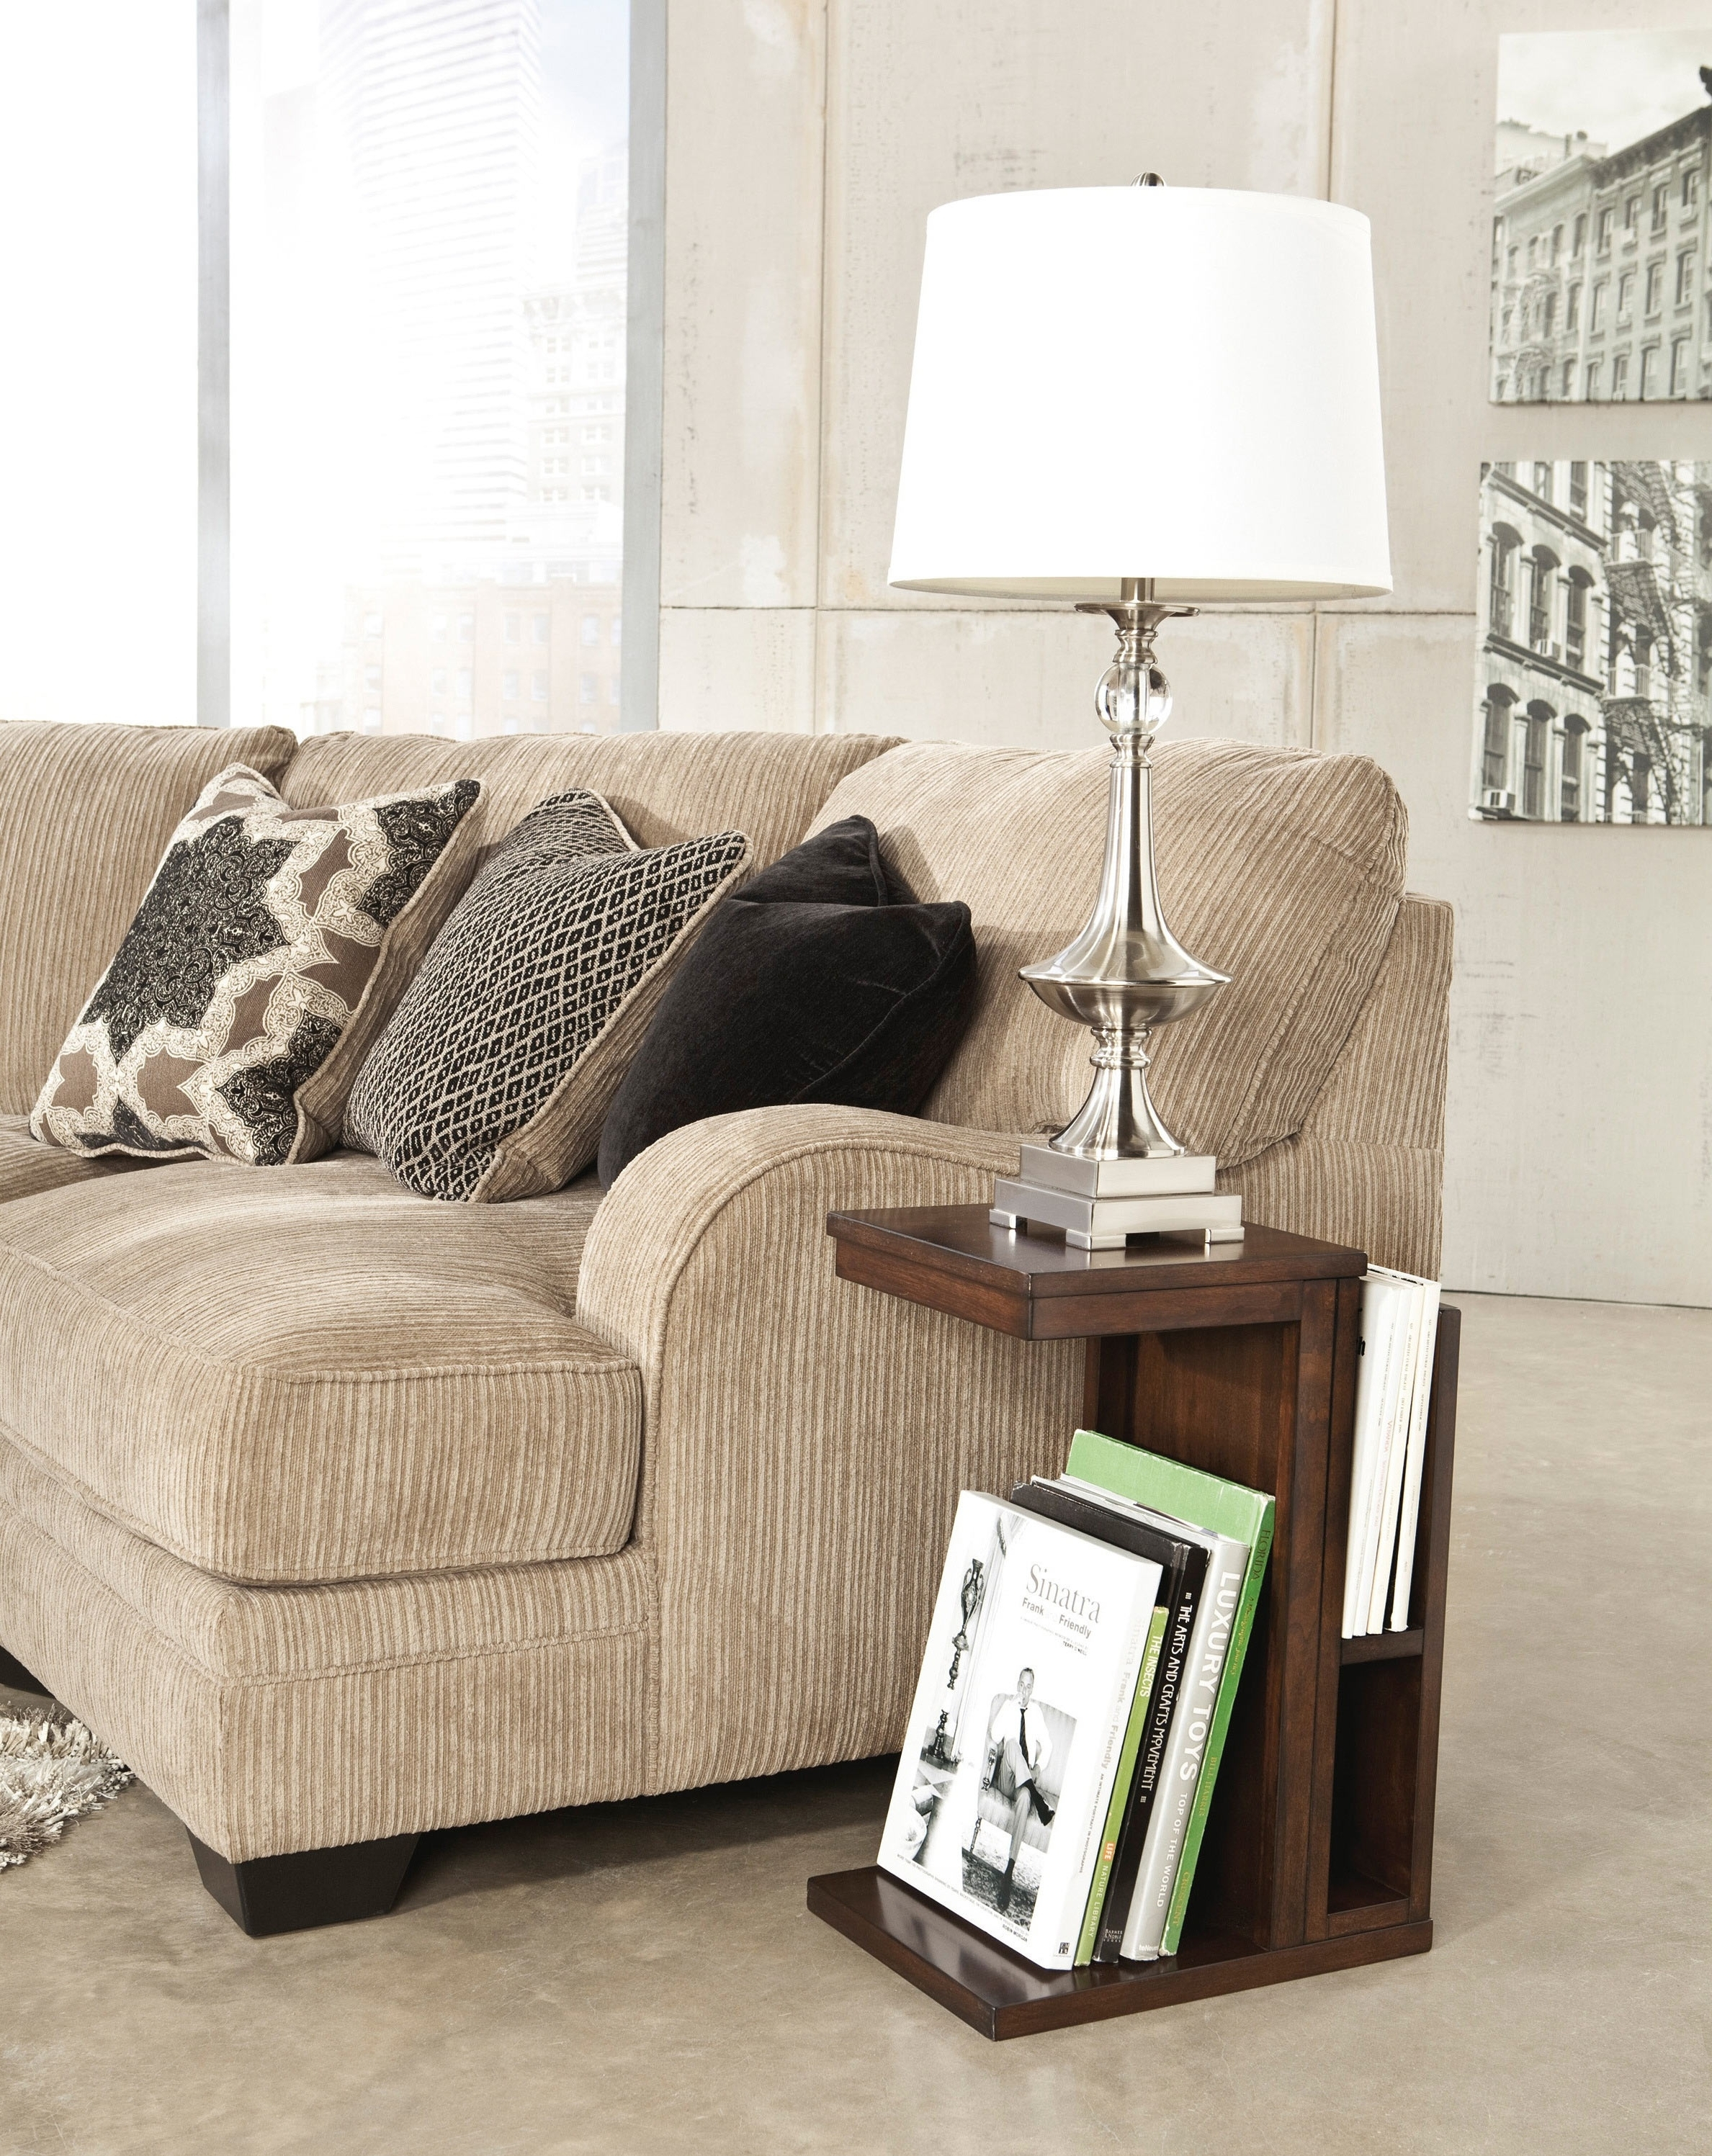 Living Room End Table Lamps Regarding 2019 End Tables : Living Room Modern End Table Lamp Design With White (View 6 of 20)